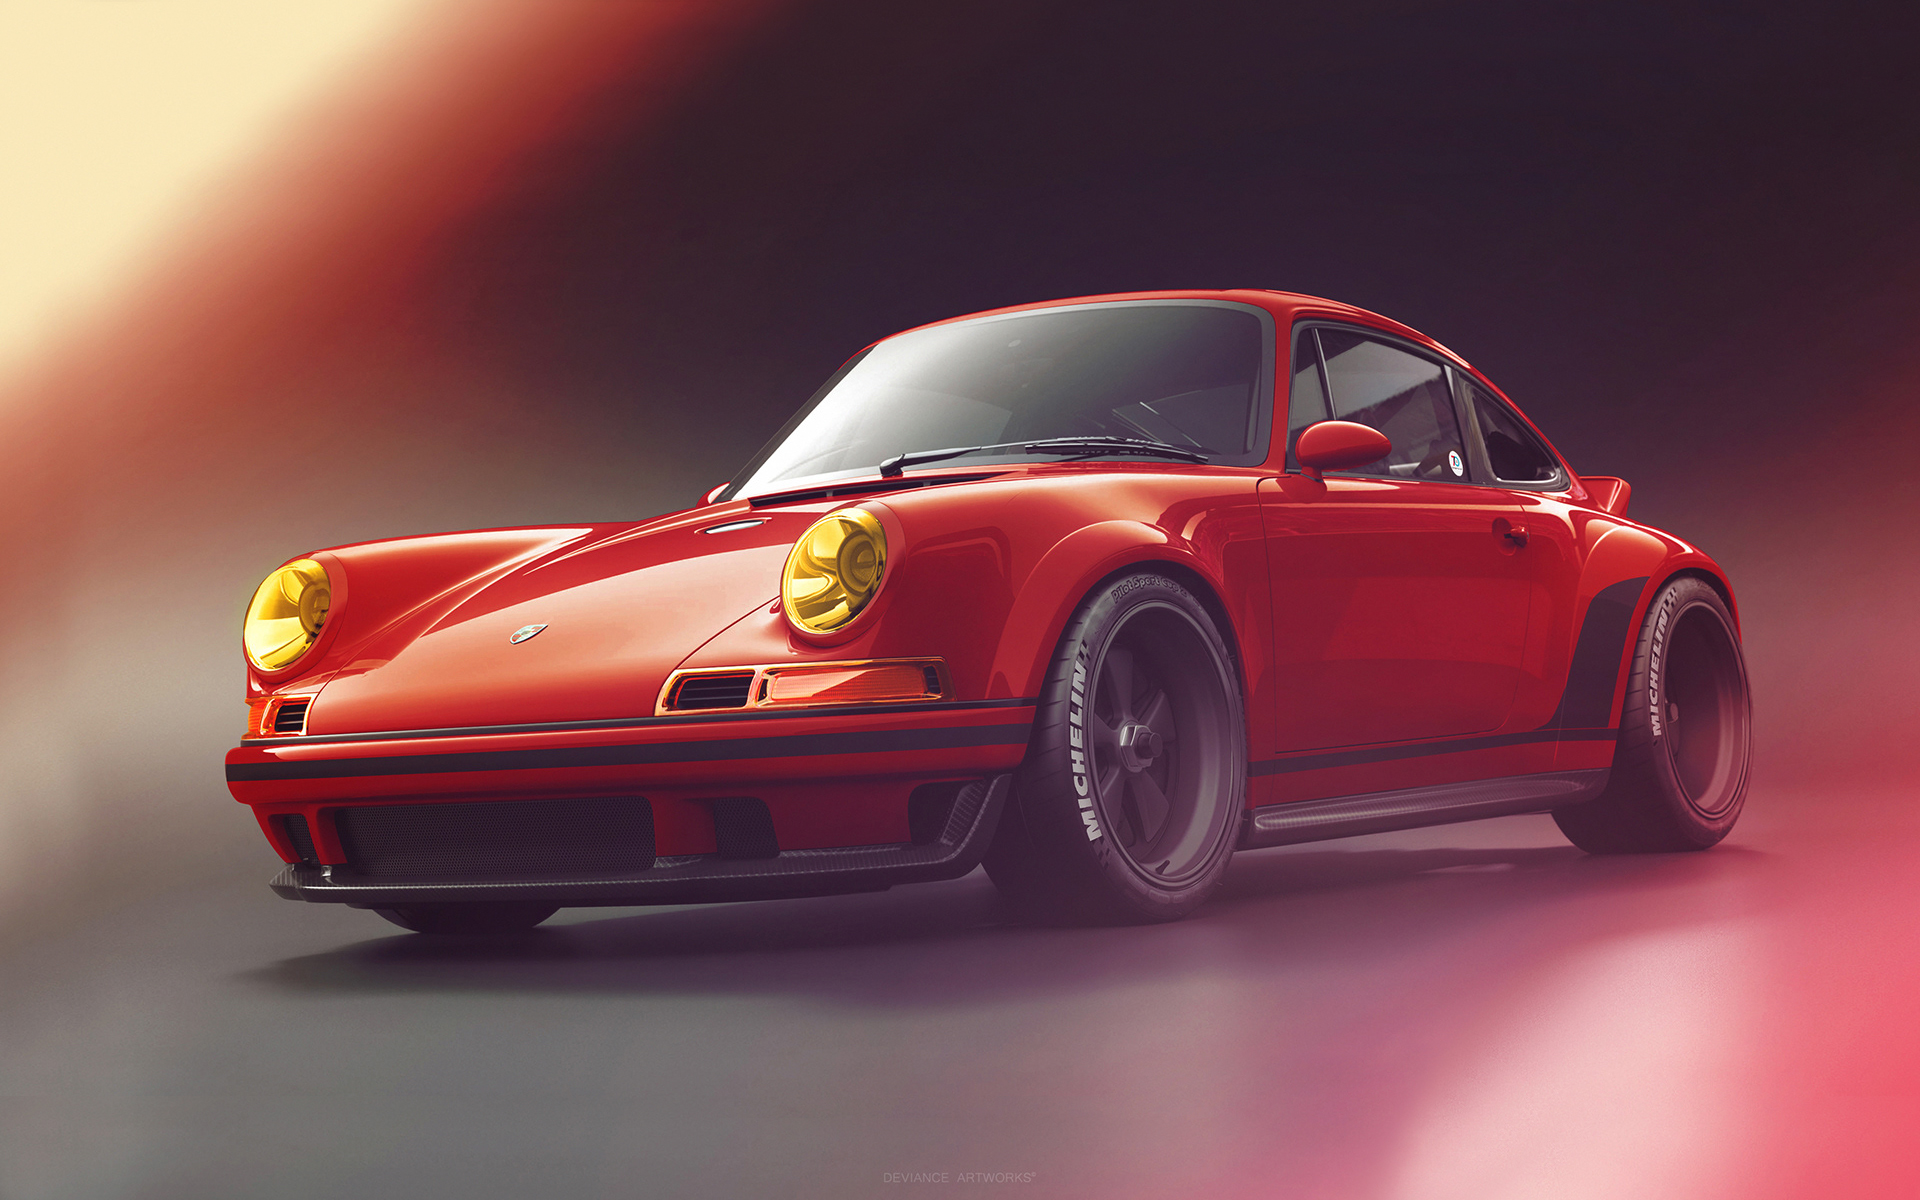 Fastest Car In The World Wallpaper Hd Daily Wallpaper Singer Porsche I Like To Waste My Time